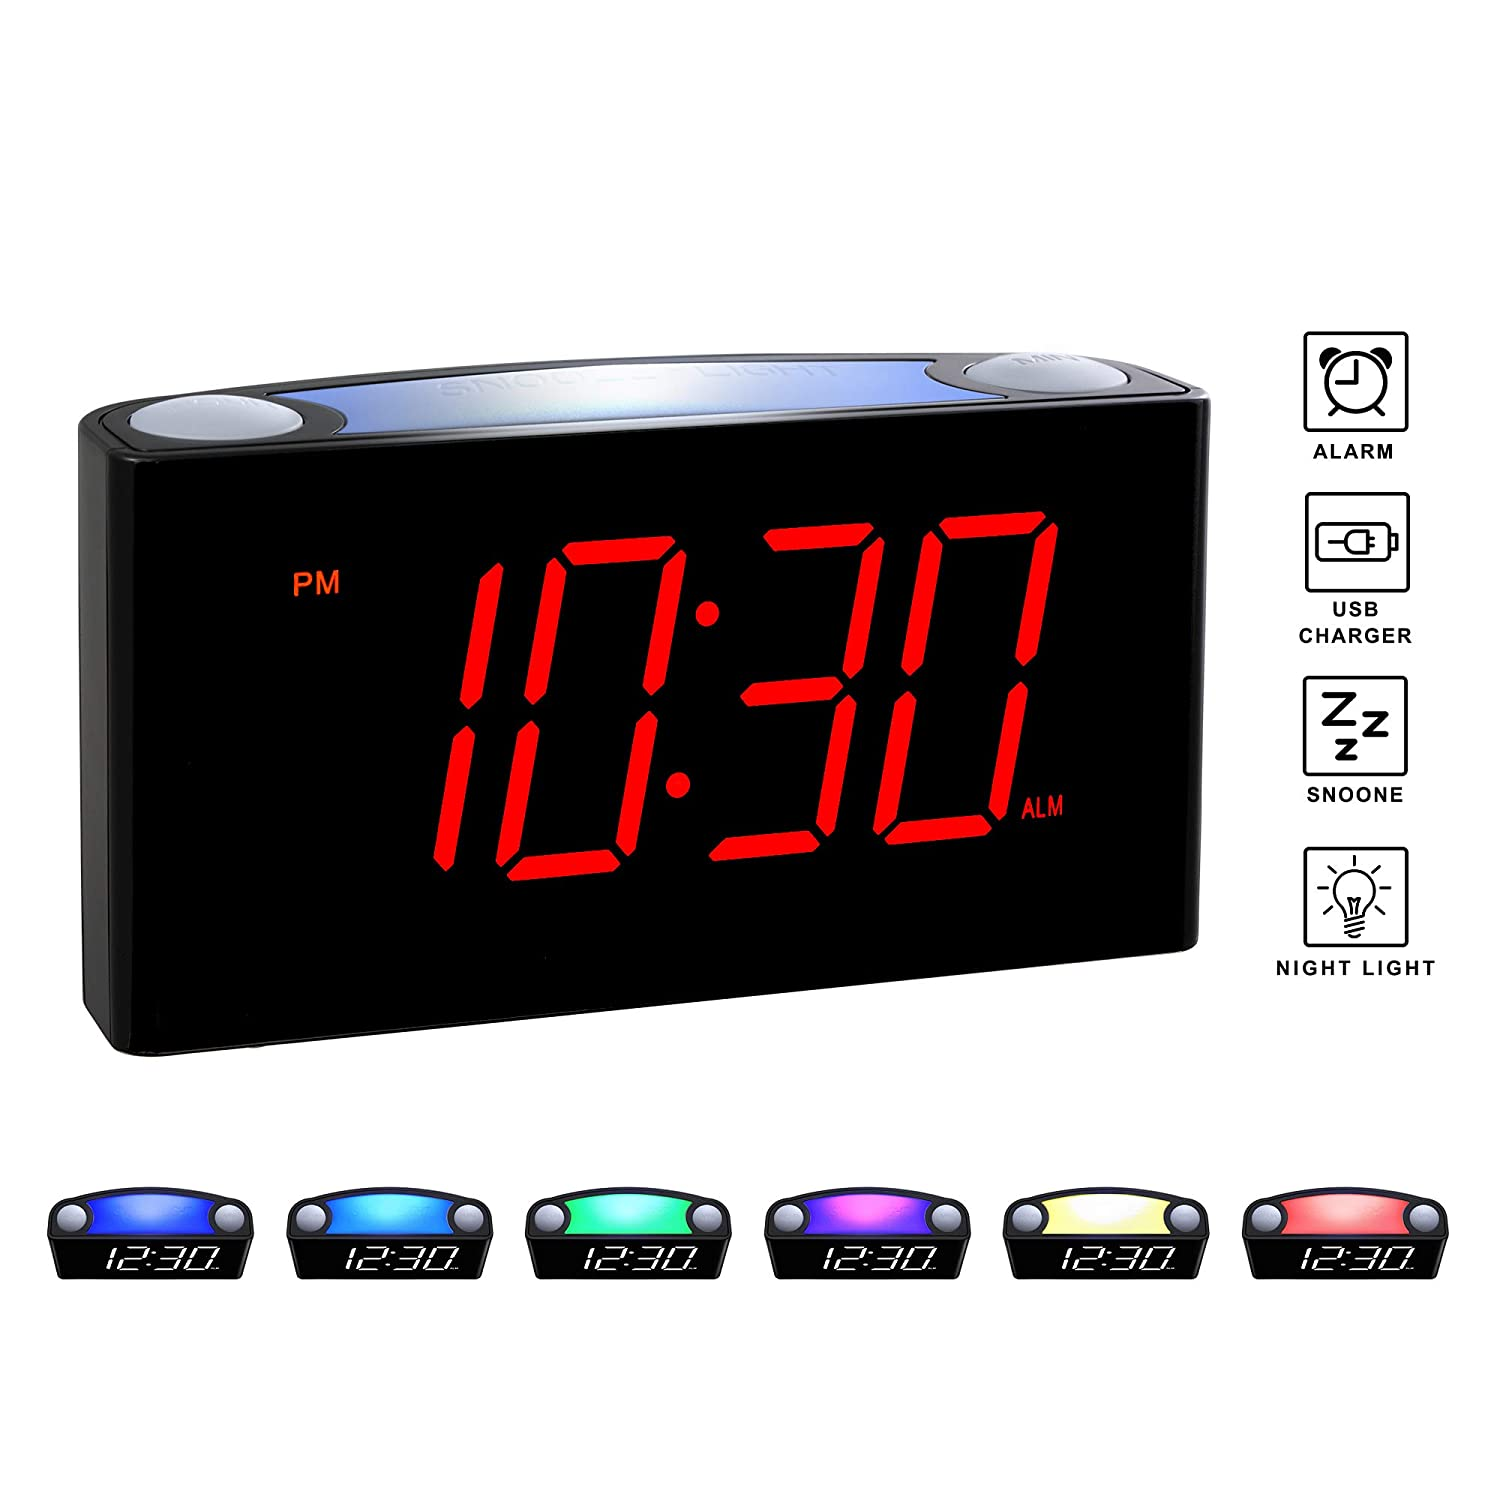 "Rocam Home LED Digital Alarm Clock - 6.5"" Large Red Display, Loud Alarm, 7 Colored Night Light, Snooze, Dimmer, Dual USB Charger Ports, Battery Backup, 12/24 Hours for Bedrooms, Kids, Heavy Sleepers"